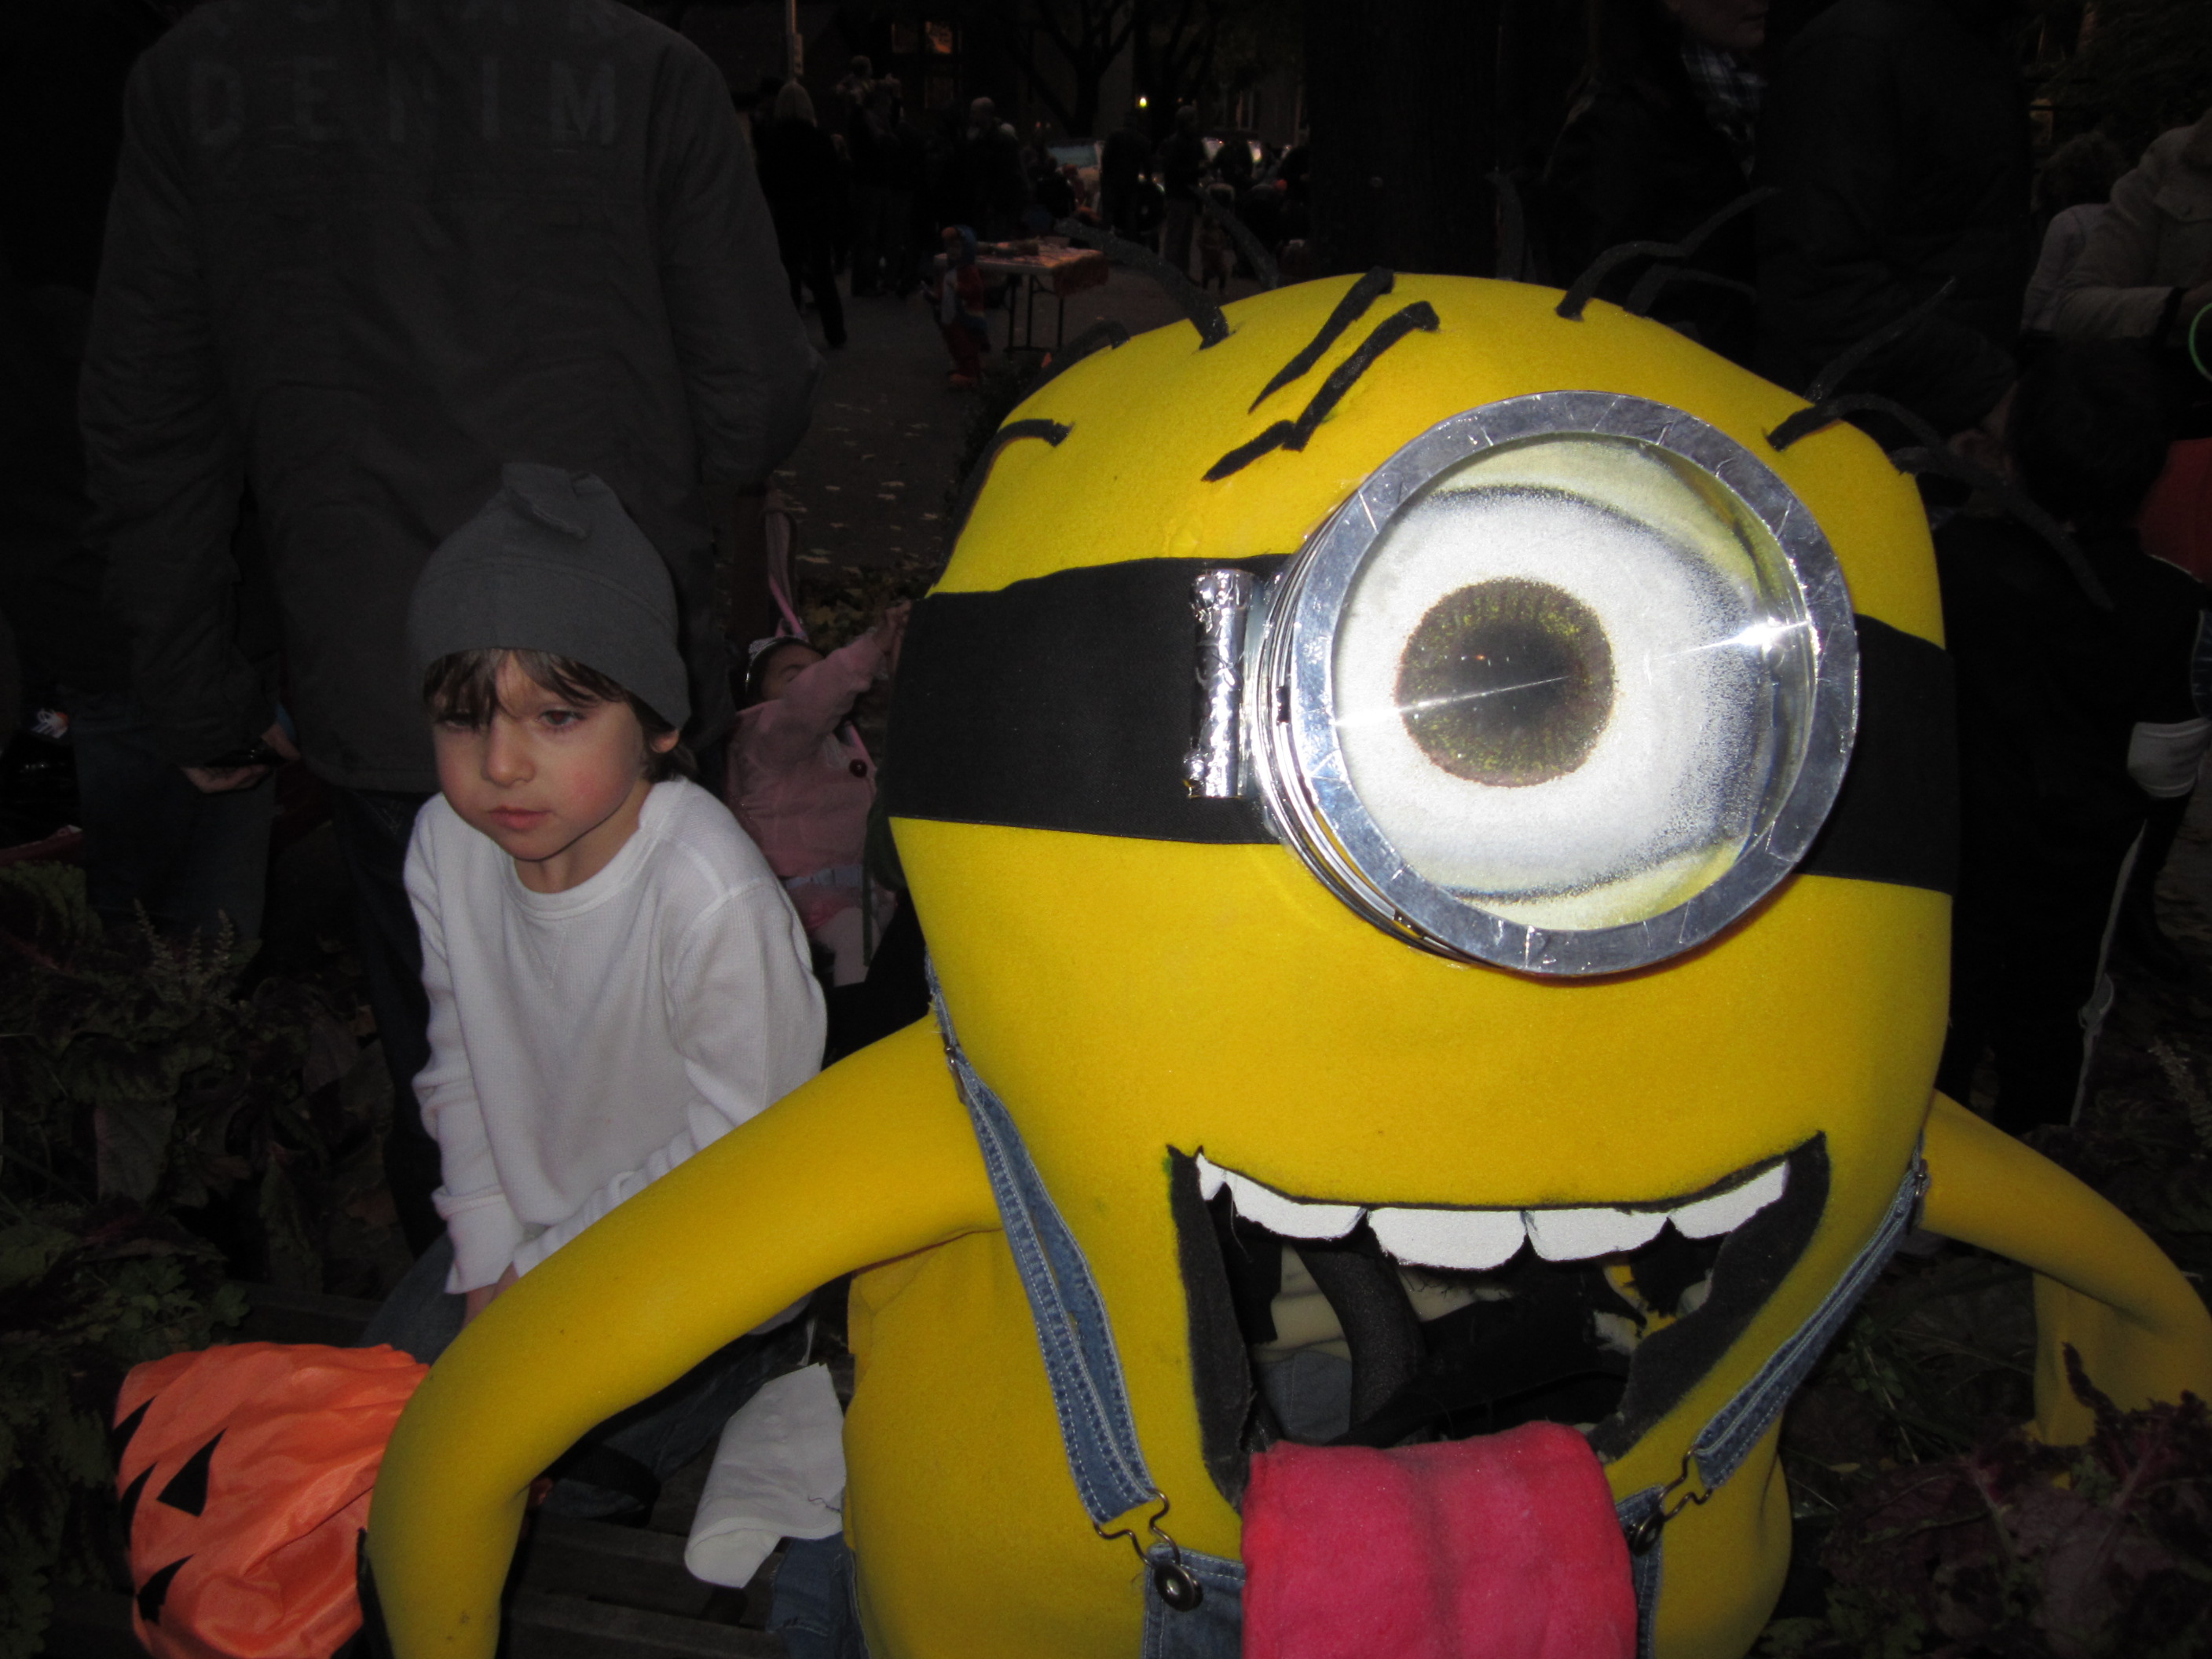 Minion Costume http://thecolorwheelstudio.com/2011/11/05/minion-costume-at-color-wheel-studio/